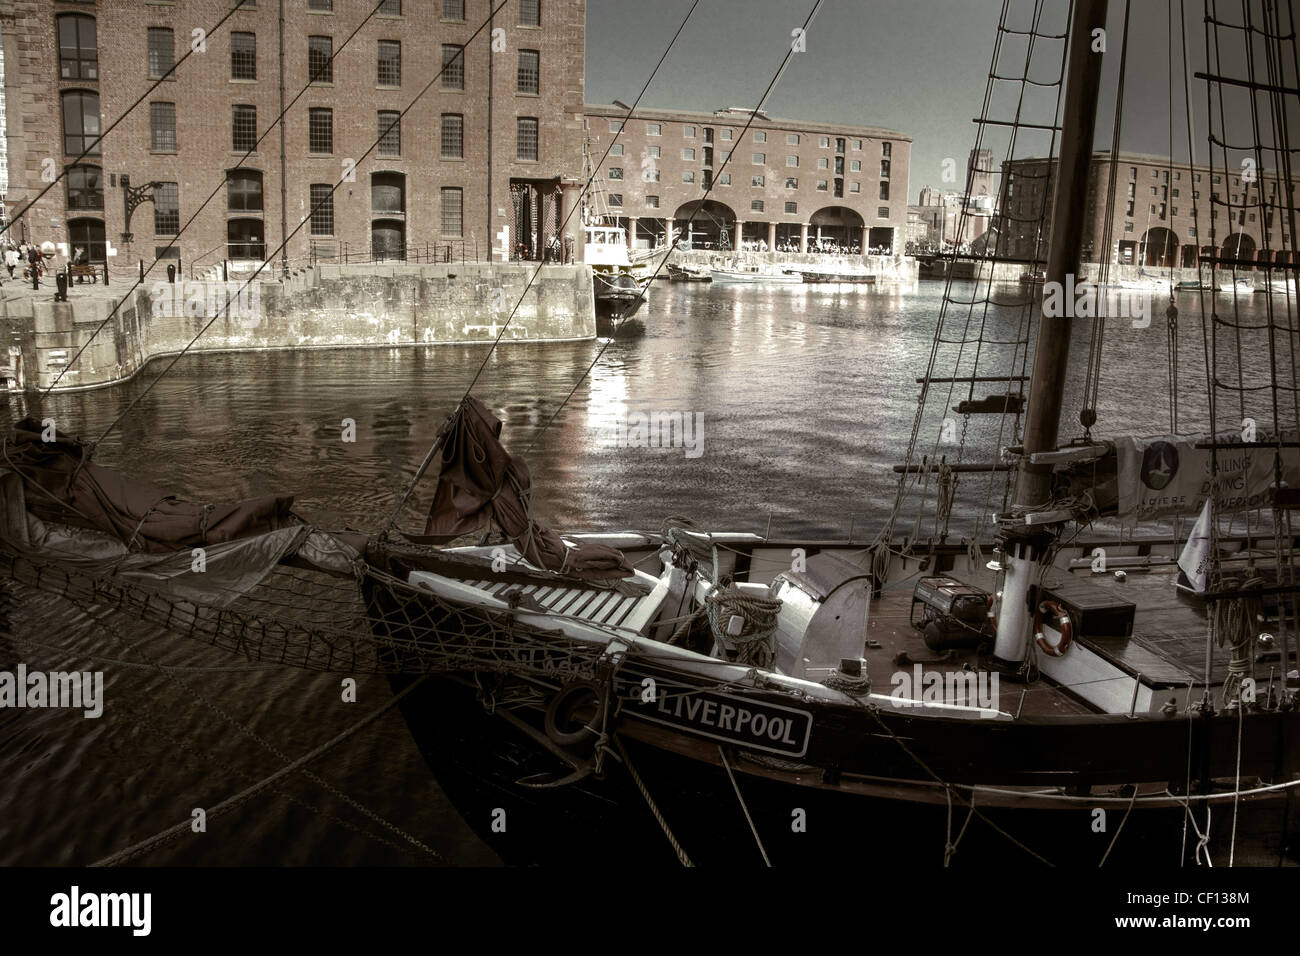 Pride of Liverpool - Ship at Albert dock Liverpool england UK - Stock Image